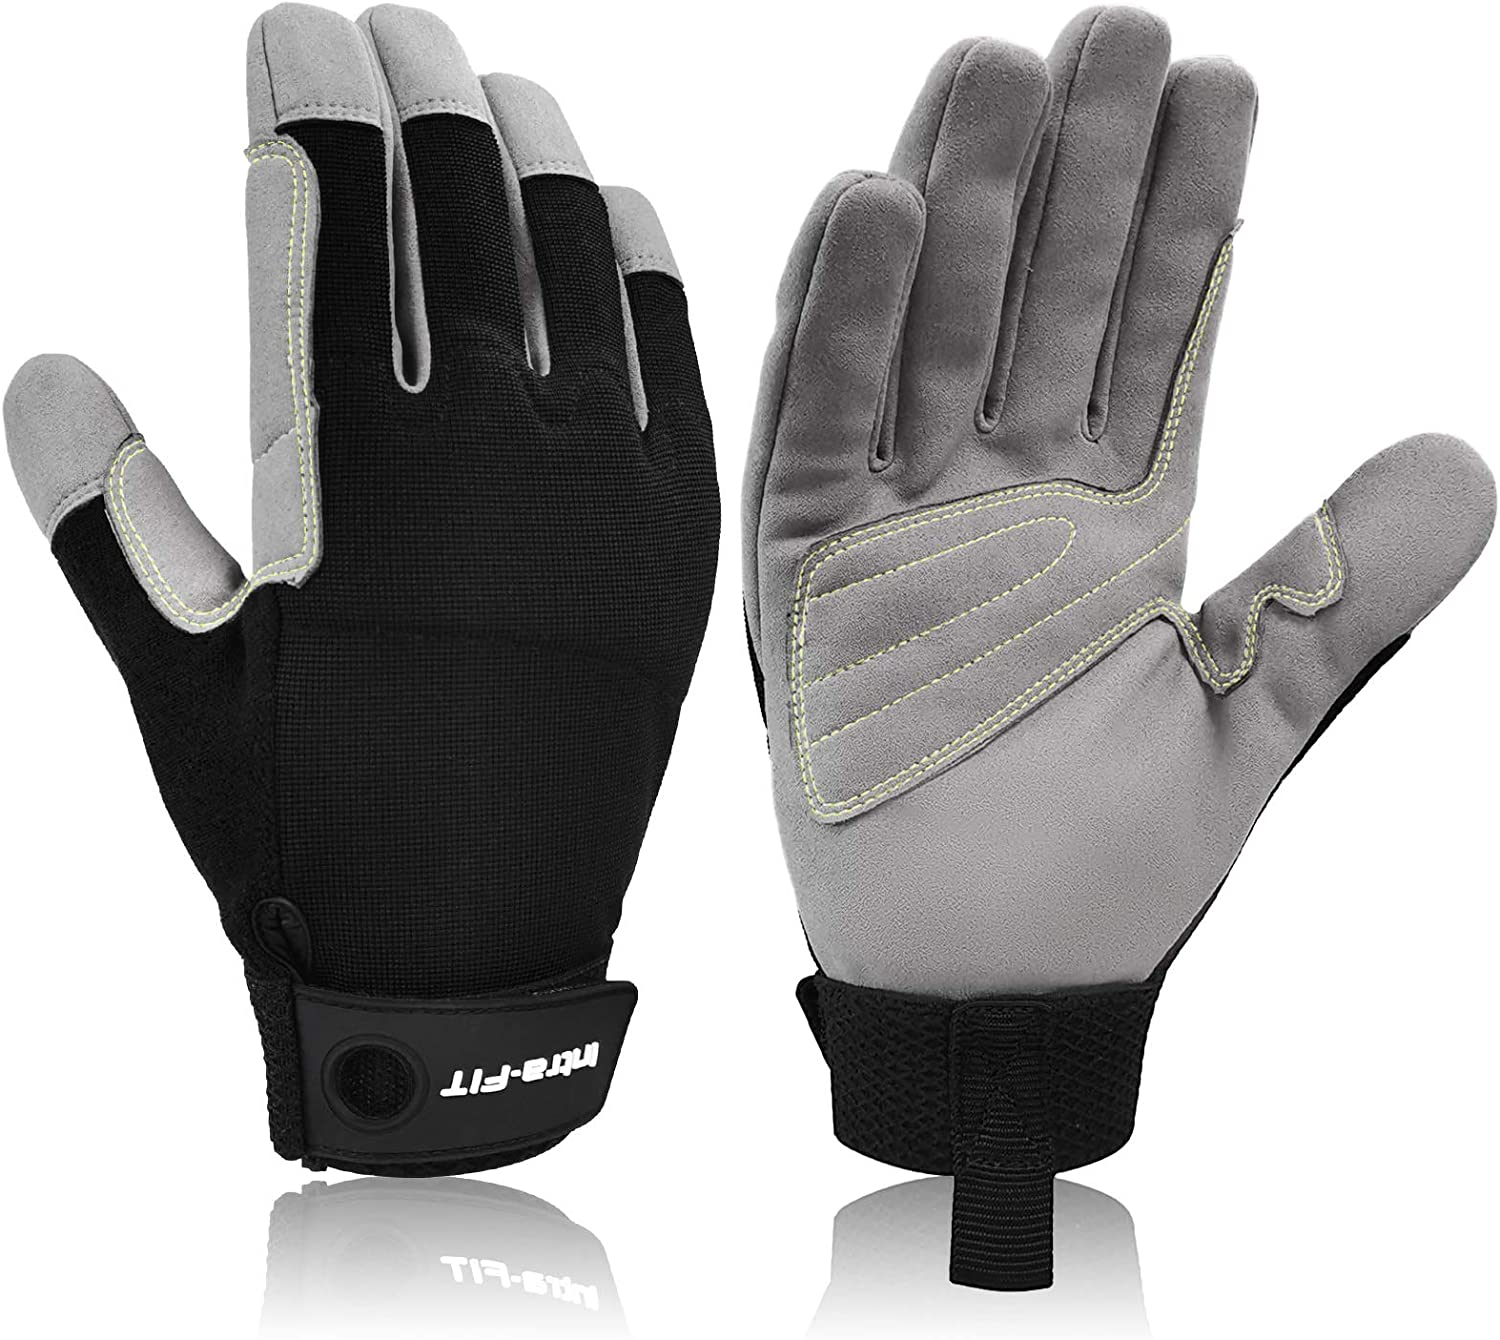 Intra-FIT Climbing Gloves Lightweight Fashion Perfect for Breathable New Free Shipping